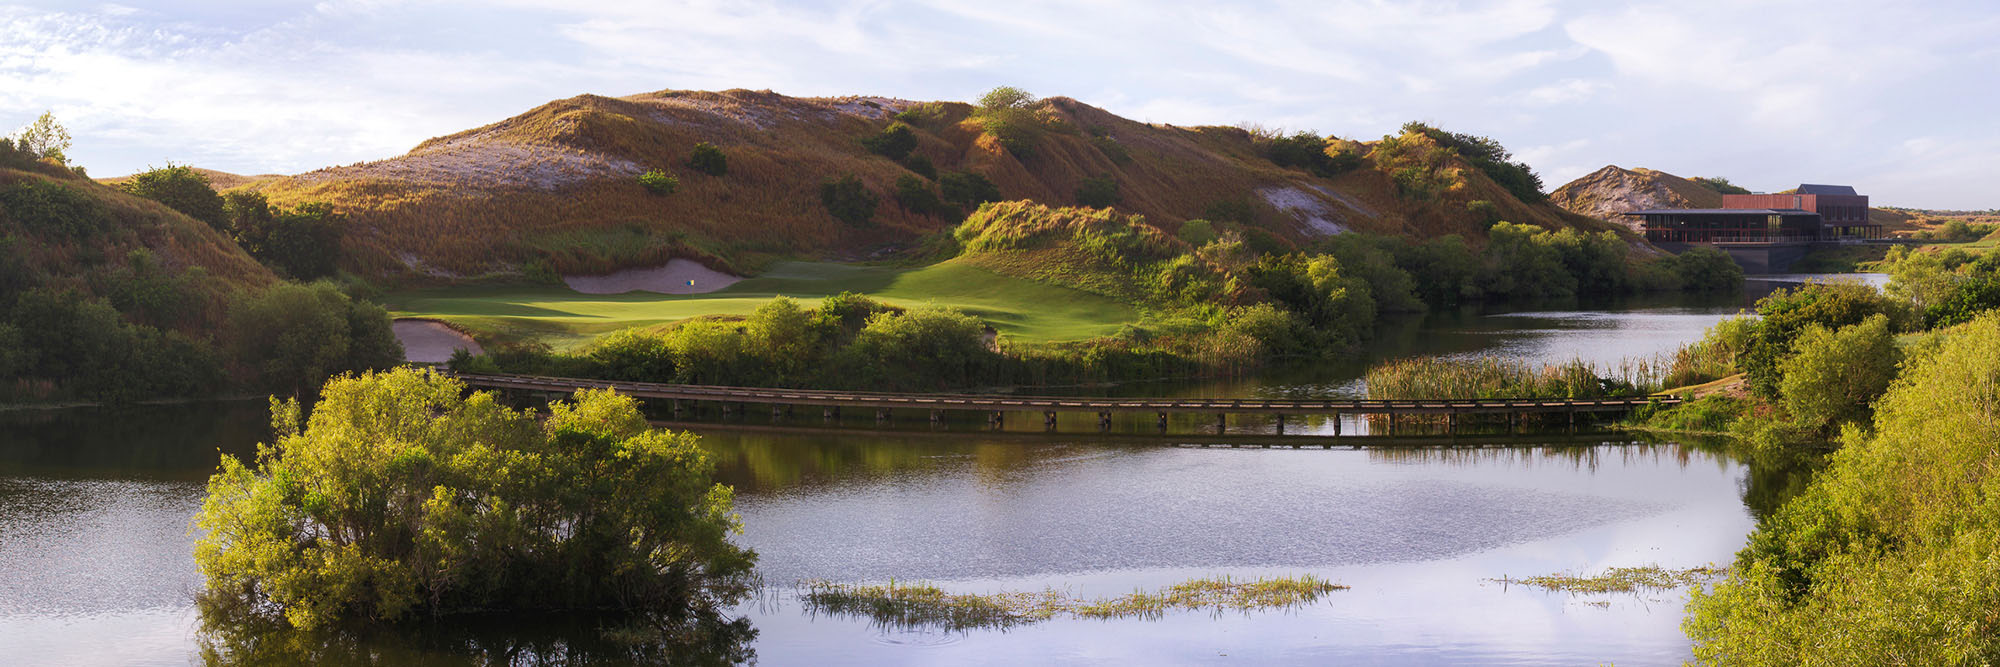 Golf Course Image - Streamsong Blue No. 7